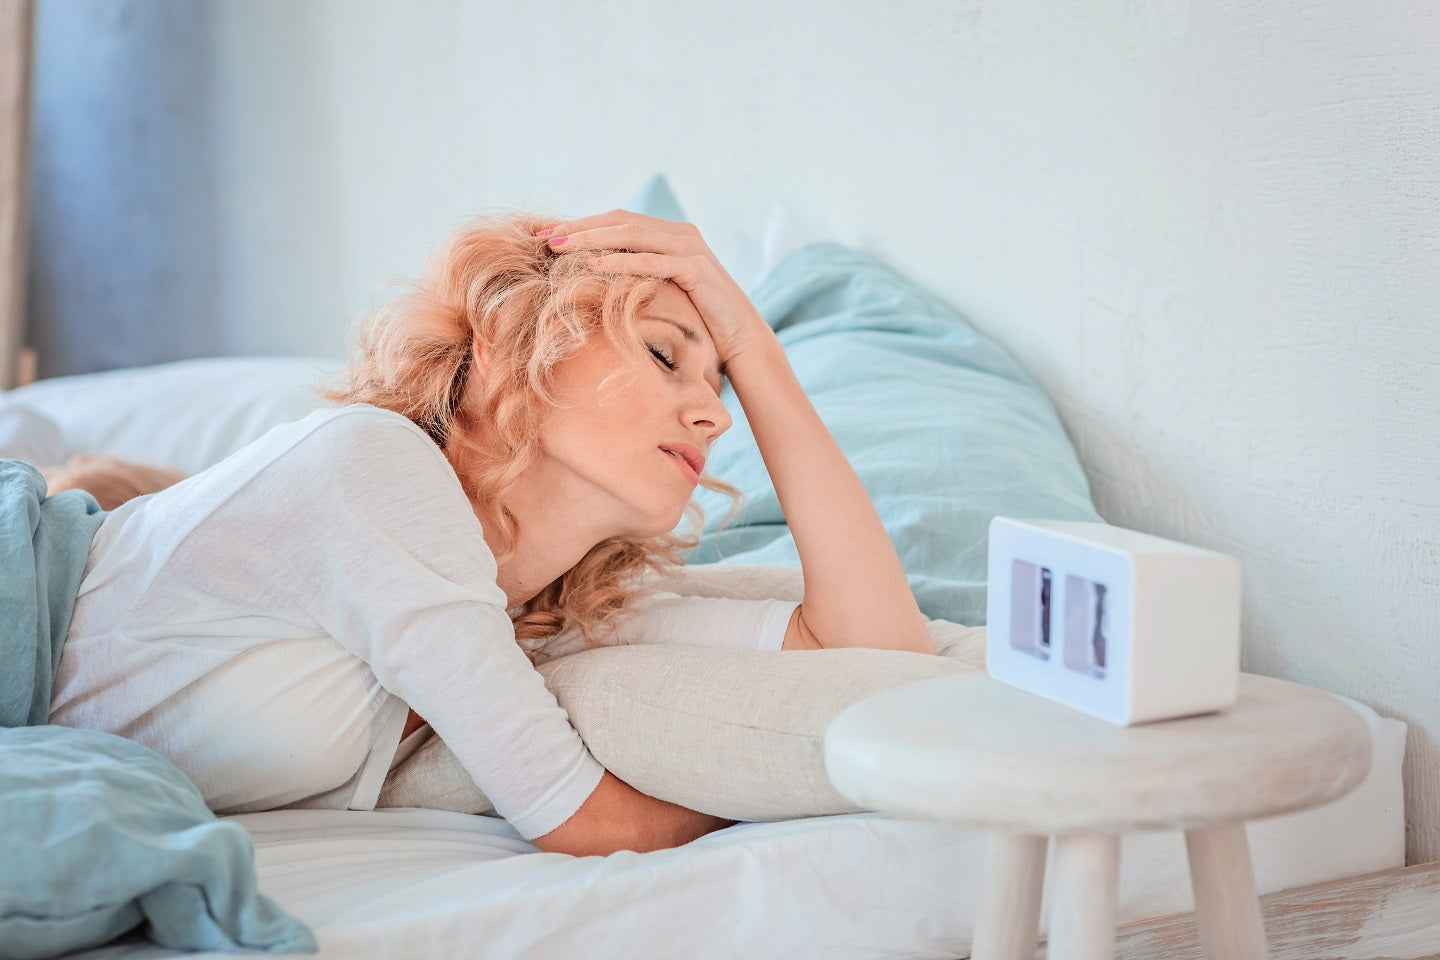 Woman experiencing sleep disorder, insomnia